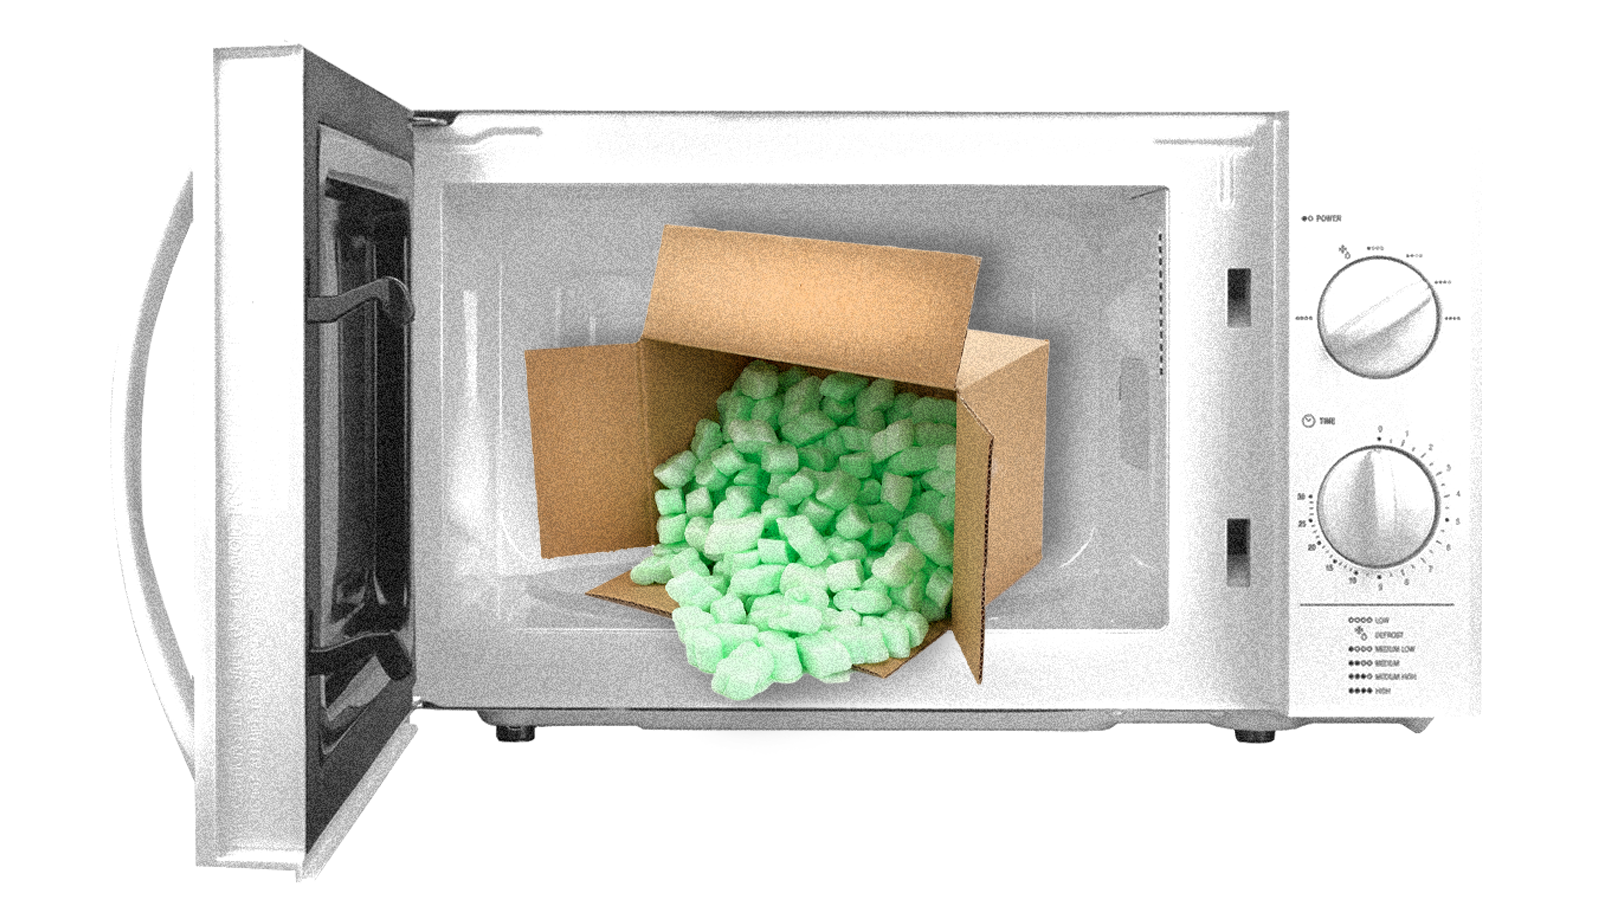 An open microwave with a box of polystyrene packing peanuts in it